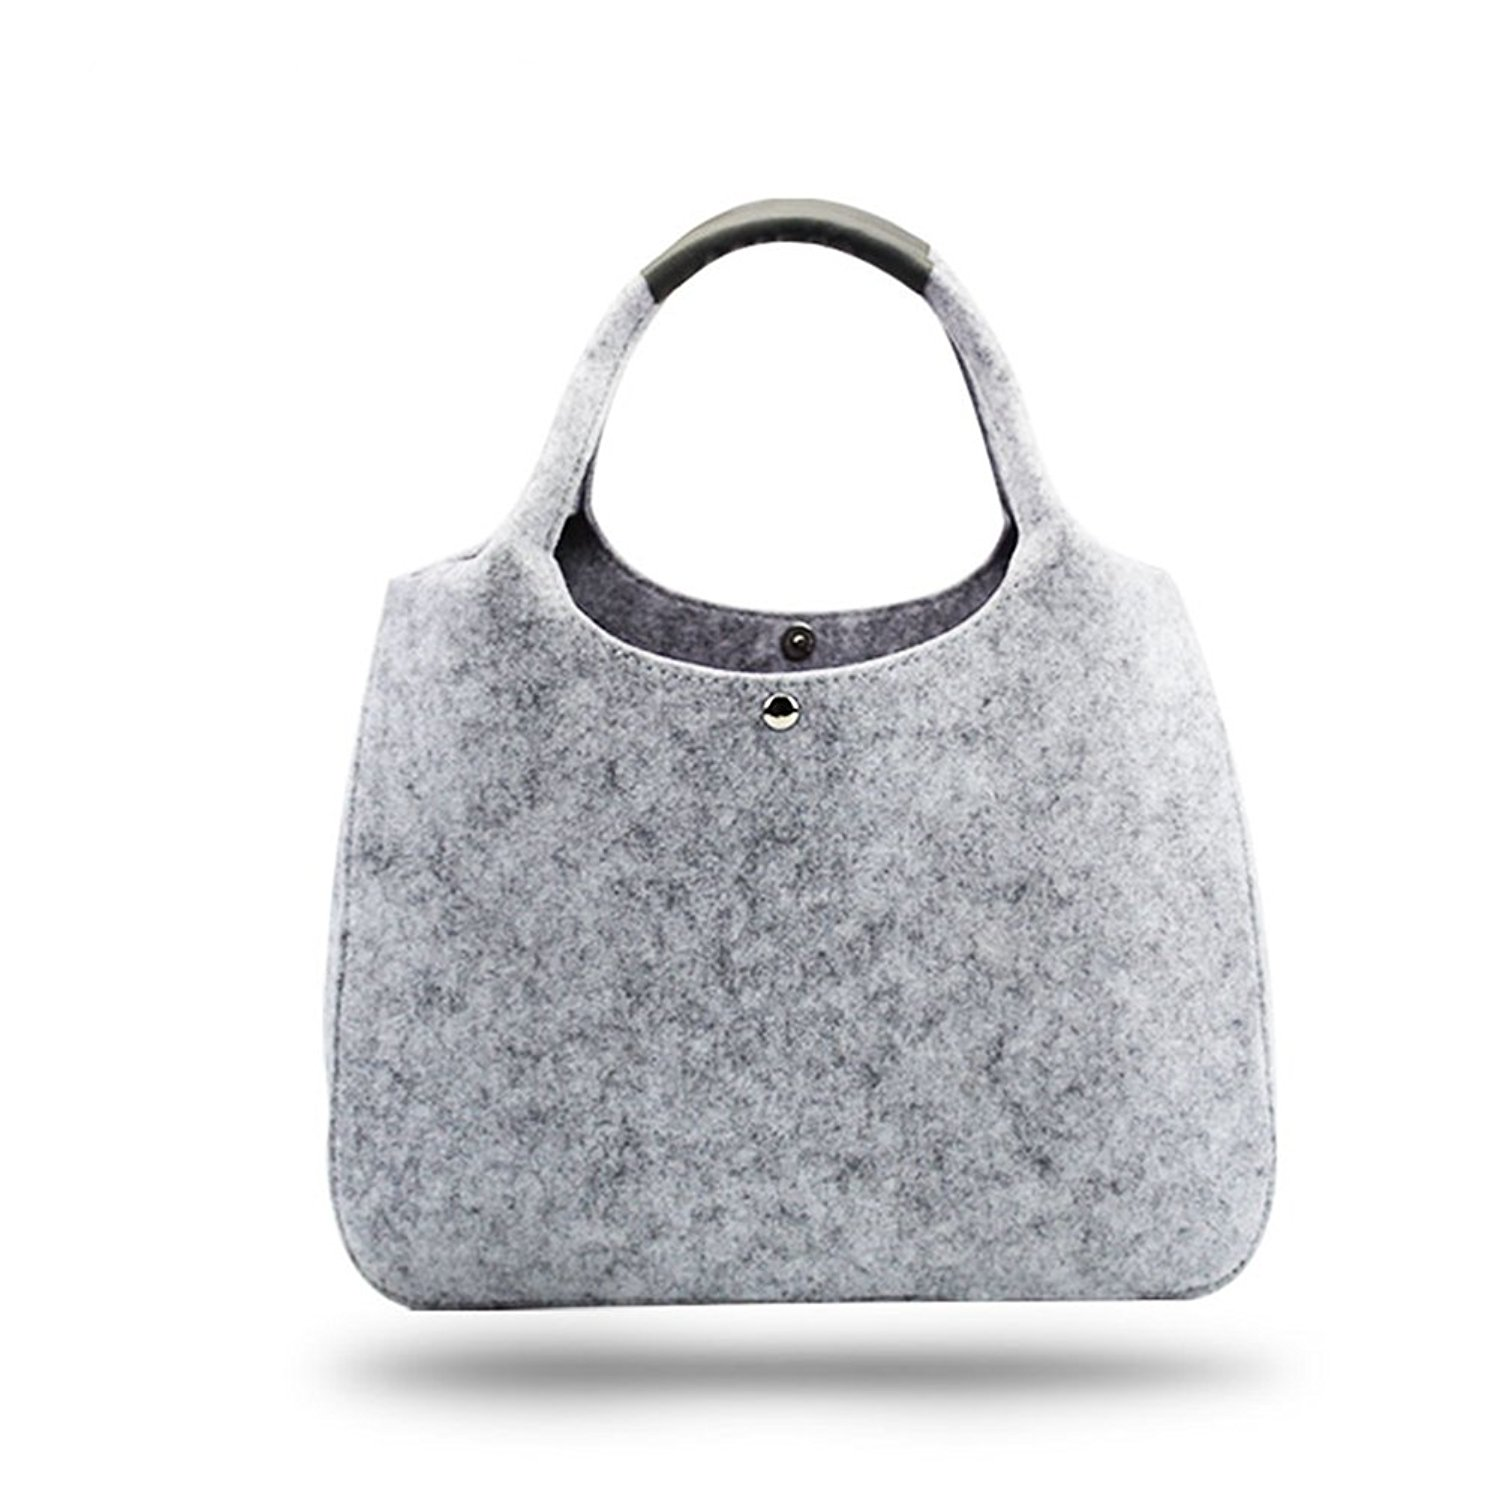 2018 Brand New designer Felt women bag,Casual shop shoulder bags,quality female bag, girl handbag For gift sunny shop 2017 spring new small women shoulder bag high quality genuine leather women bag brand designer handbag gift for lady